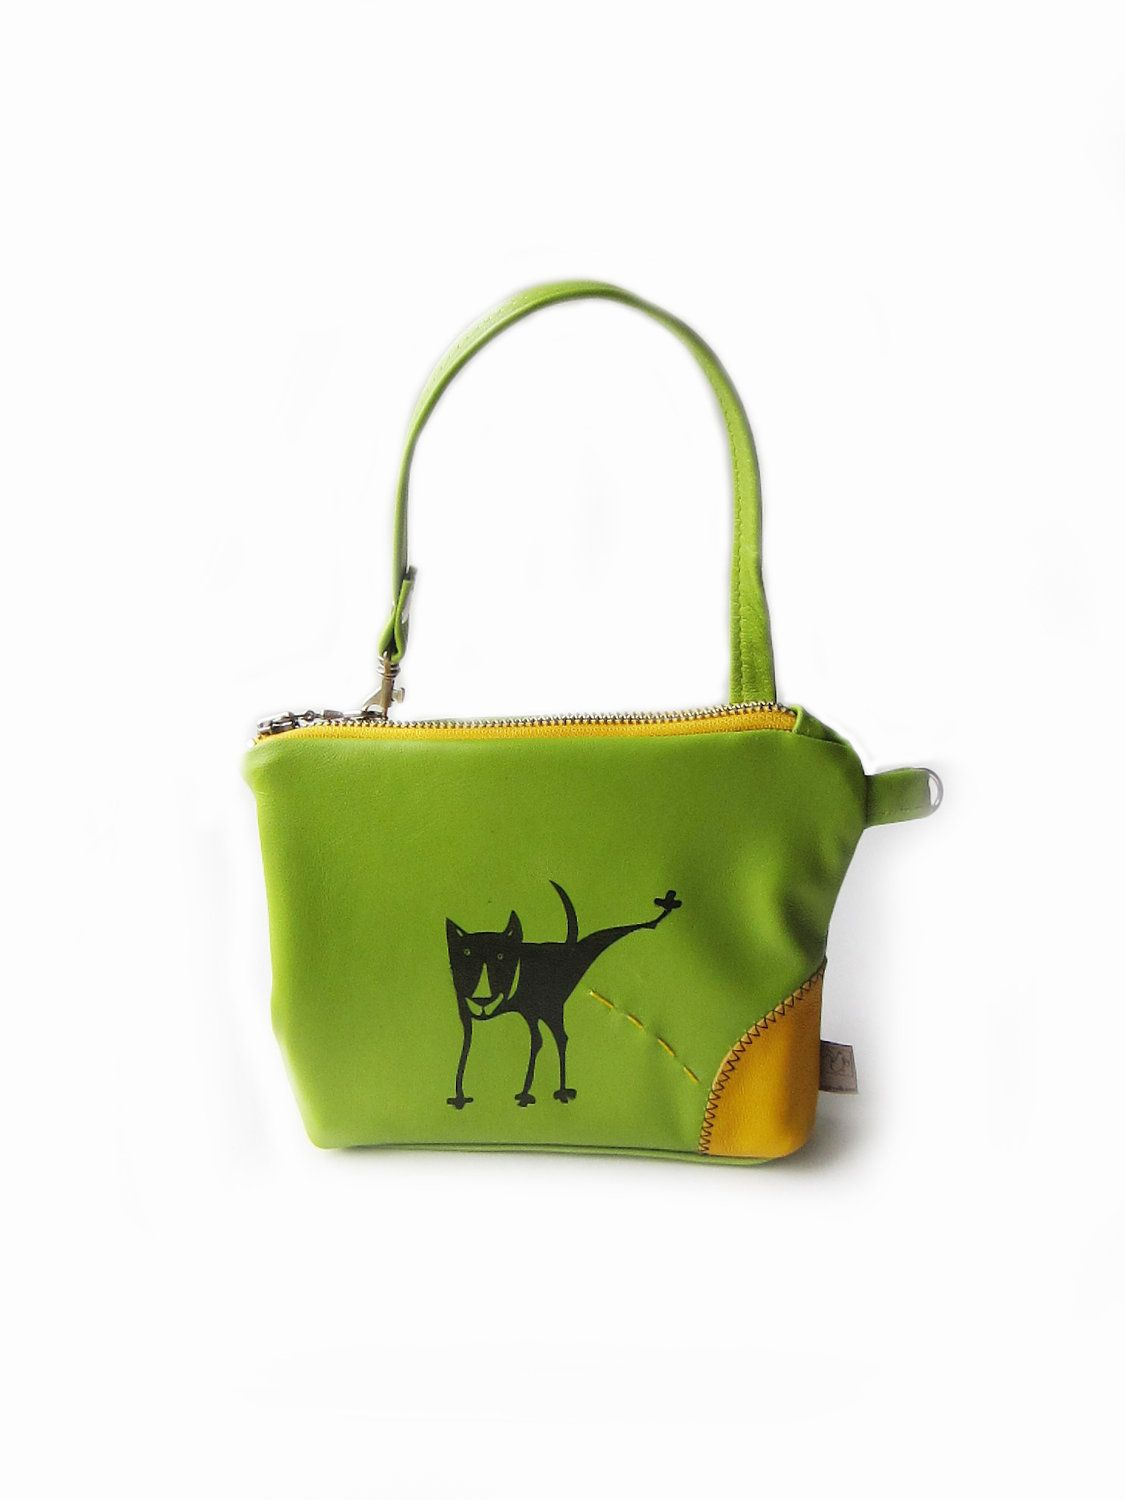 Leather Purse Ing Dog Pouch Lime Green By Squirrellicious